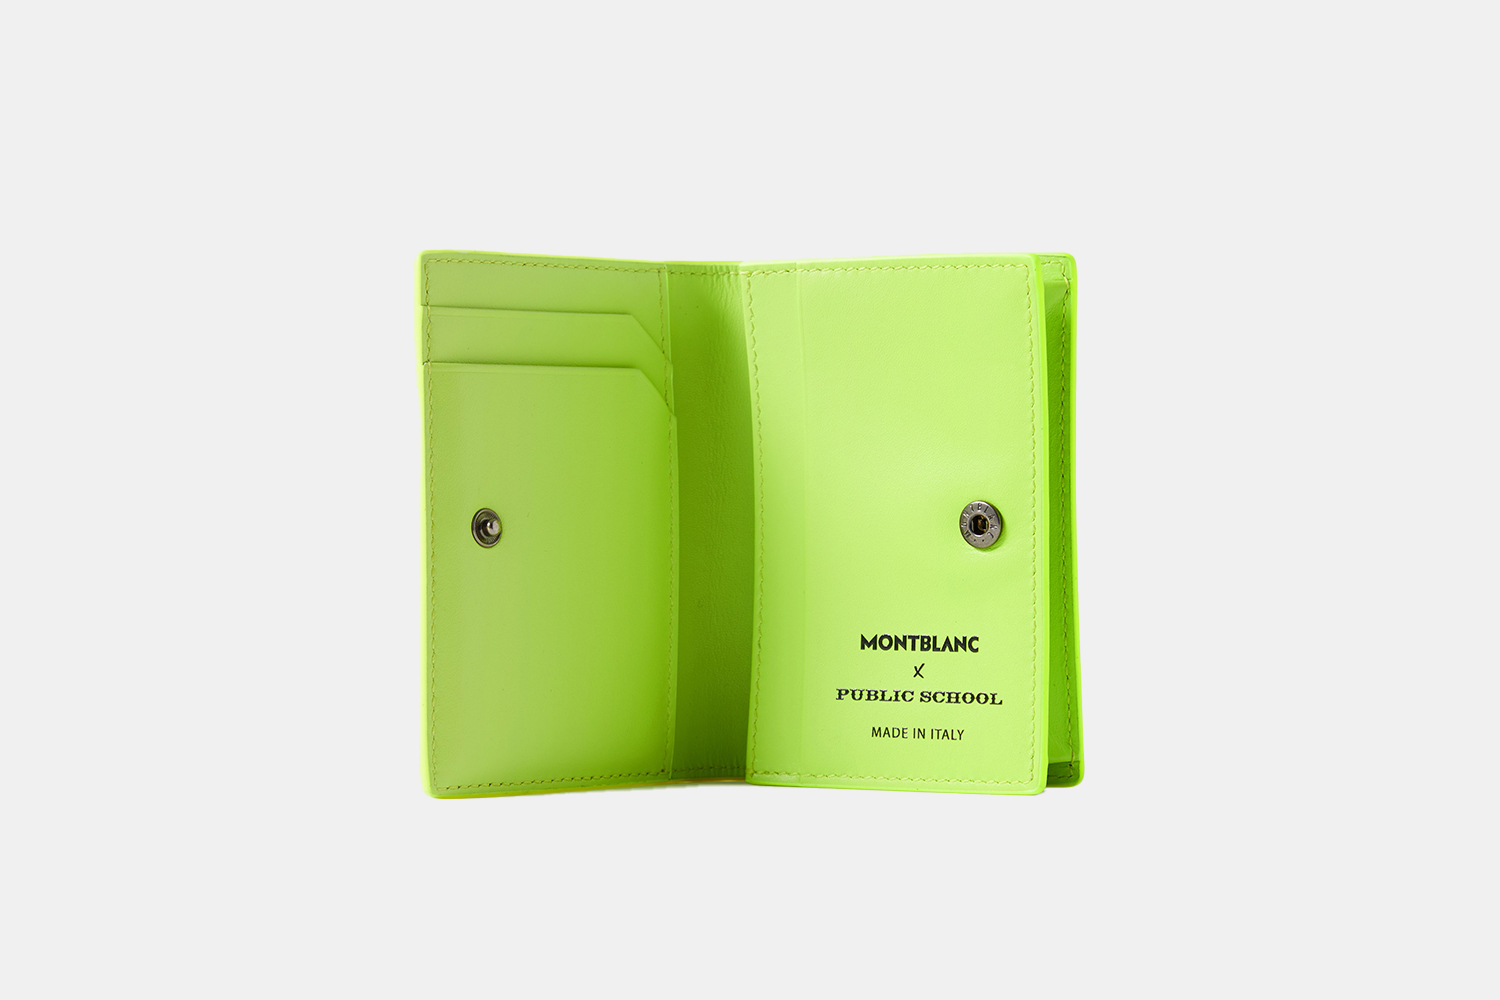 A neon yellow cardholder